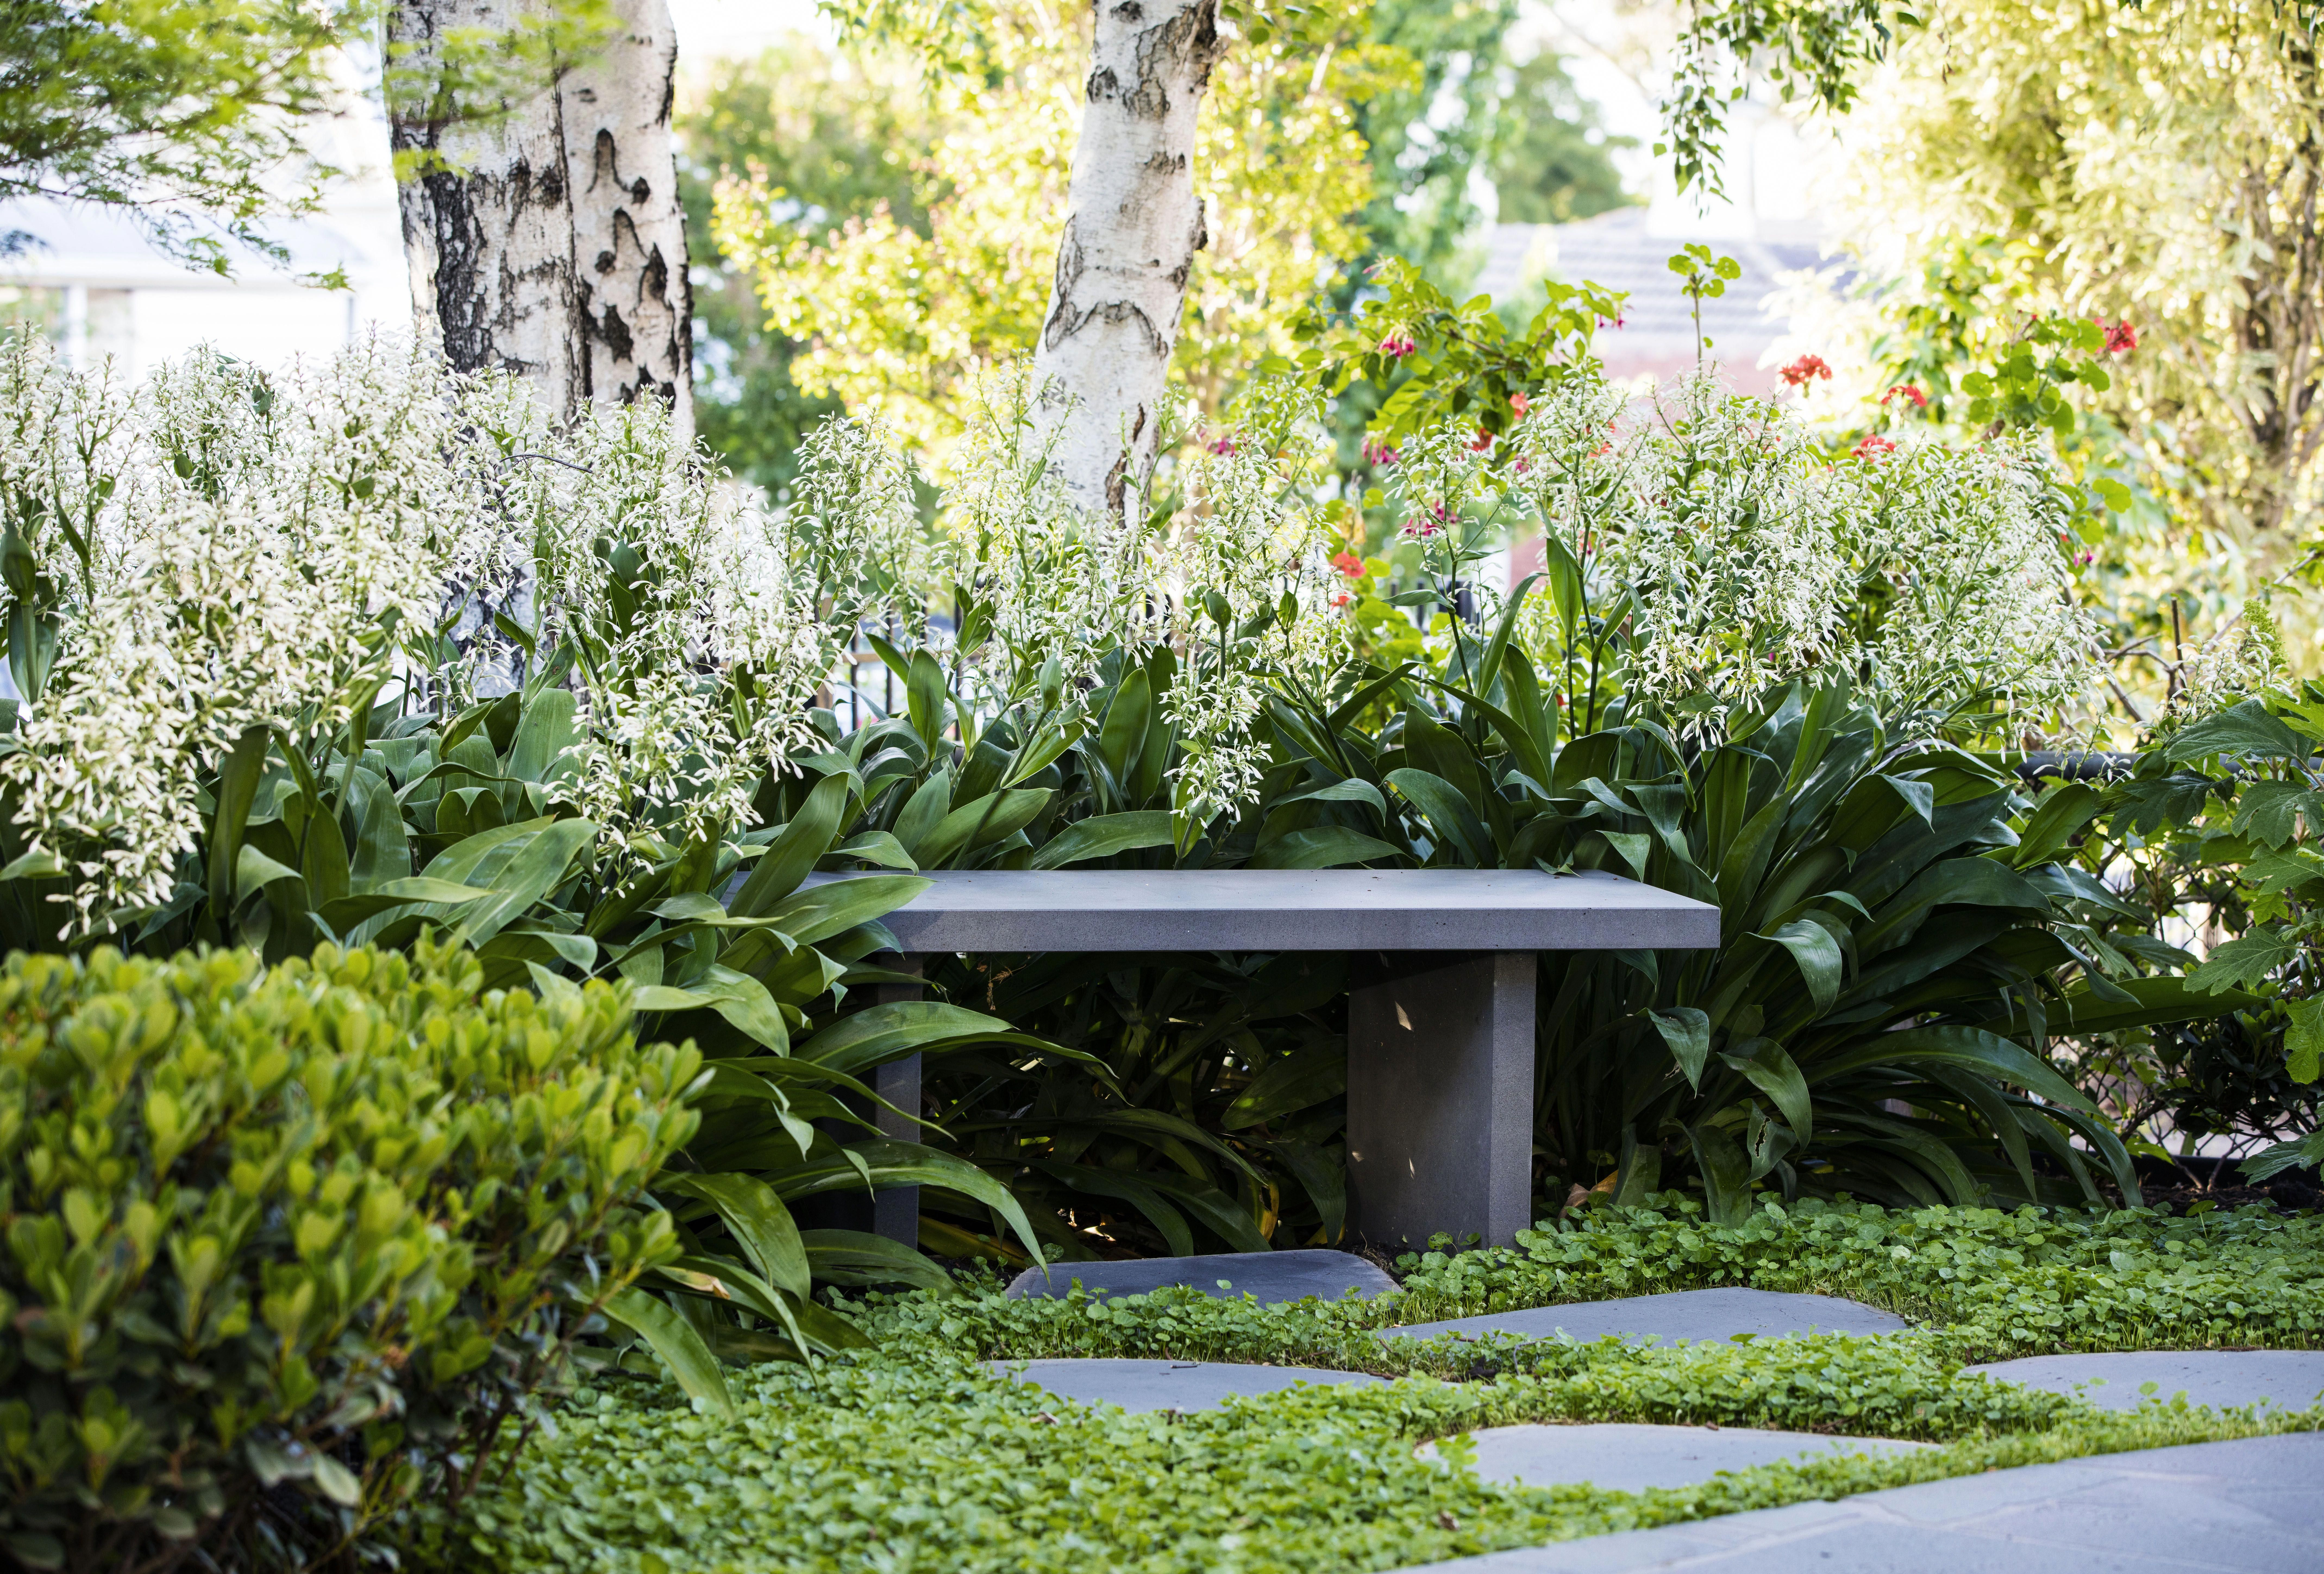 A Stone Garden Bench Is Nestled Amongst Blooming Flowers In This Lush Low Maintenance Garde Low Maintenance Backyard Low Maintenance Garden Stone Garden Bench